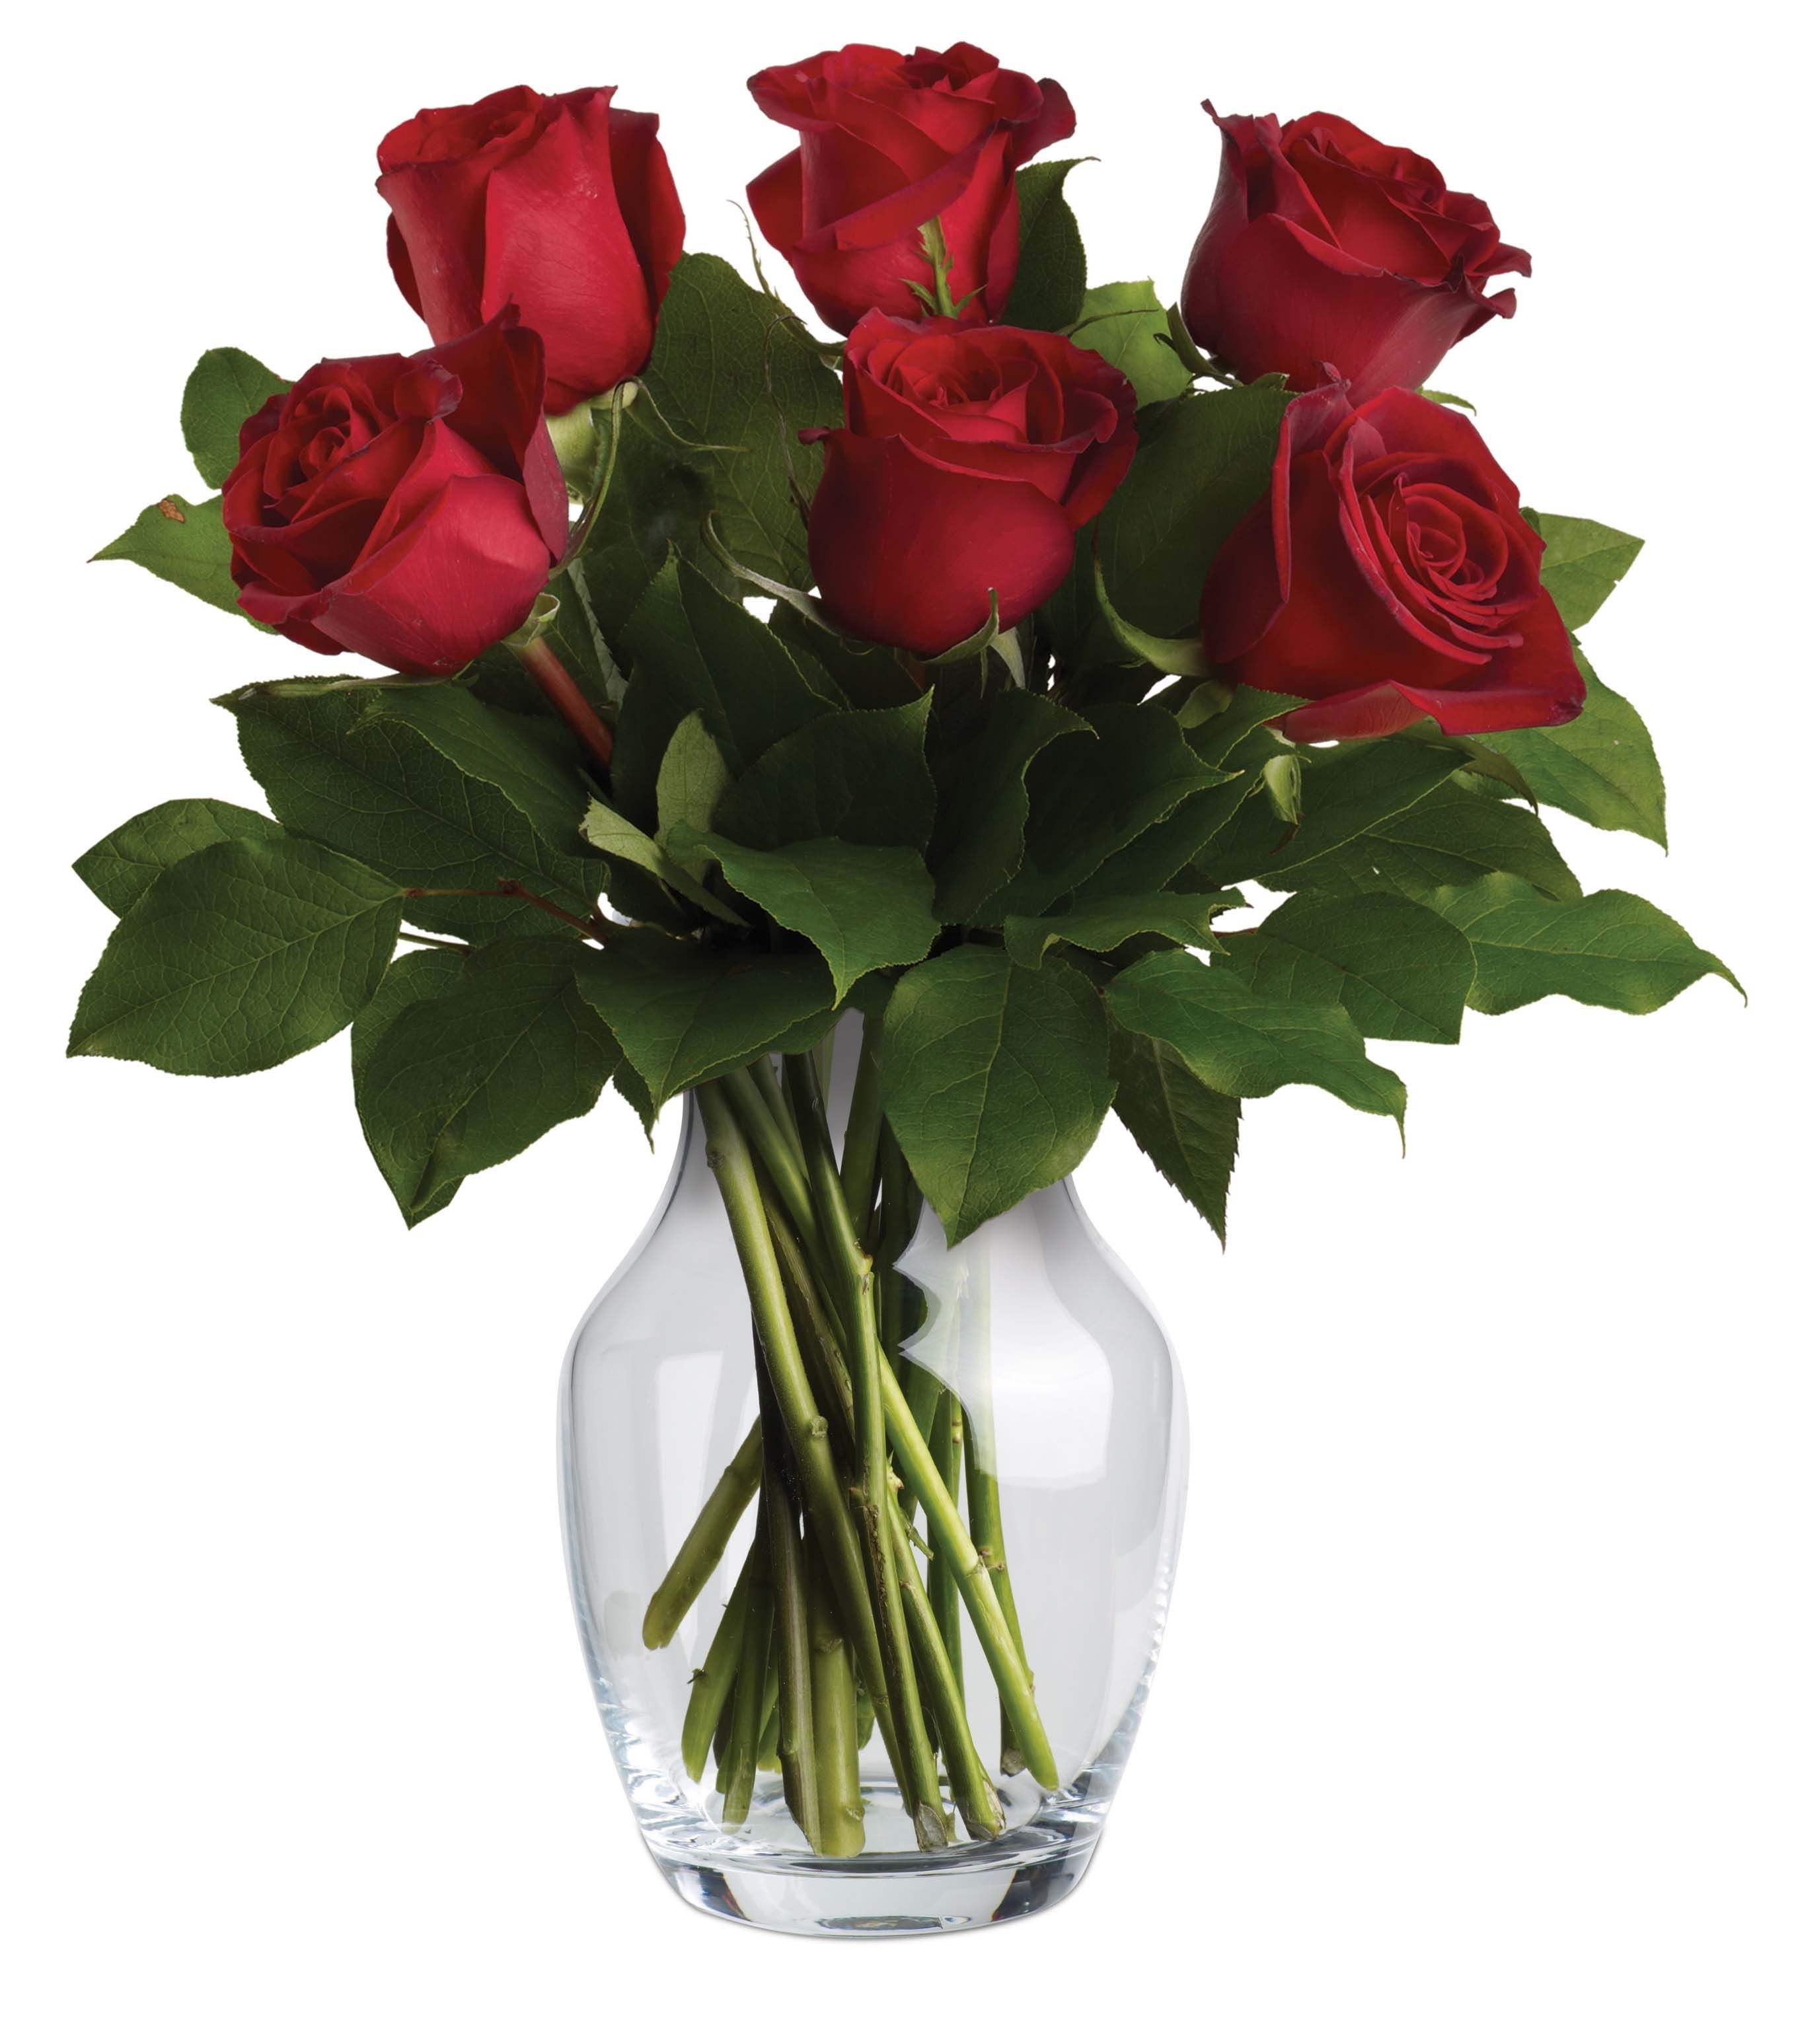 V11v endless love if the red roses exquisite beauty isnt reason if the red roses exquisite beauty isnt reason enough to make it the ideal choice to express your love its symbolism of magic and passion adds a message izmirmasajfo Images